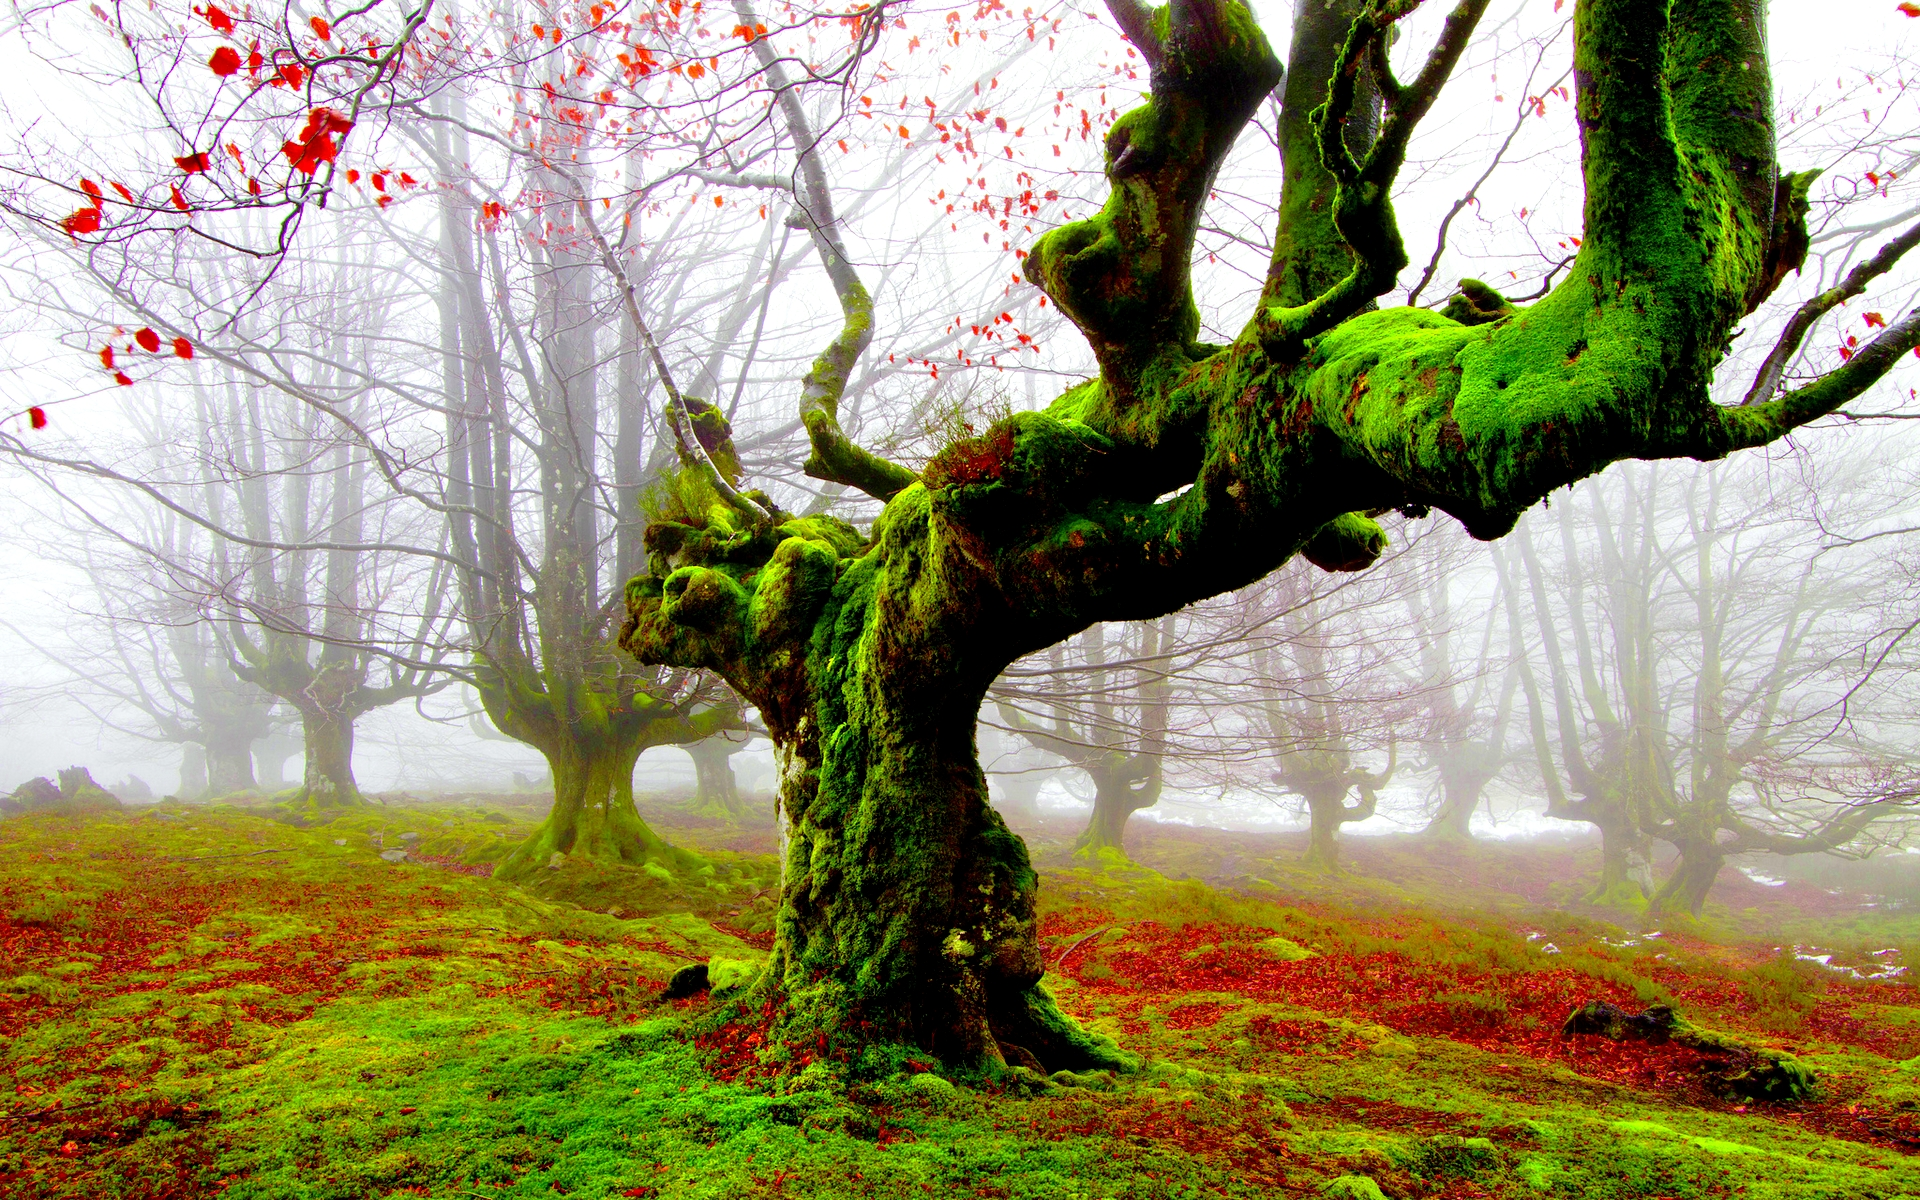 Hd Best Wallpapers For Laptop 28 Fantastic Hd Moss Wallpapers